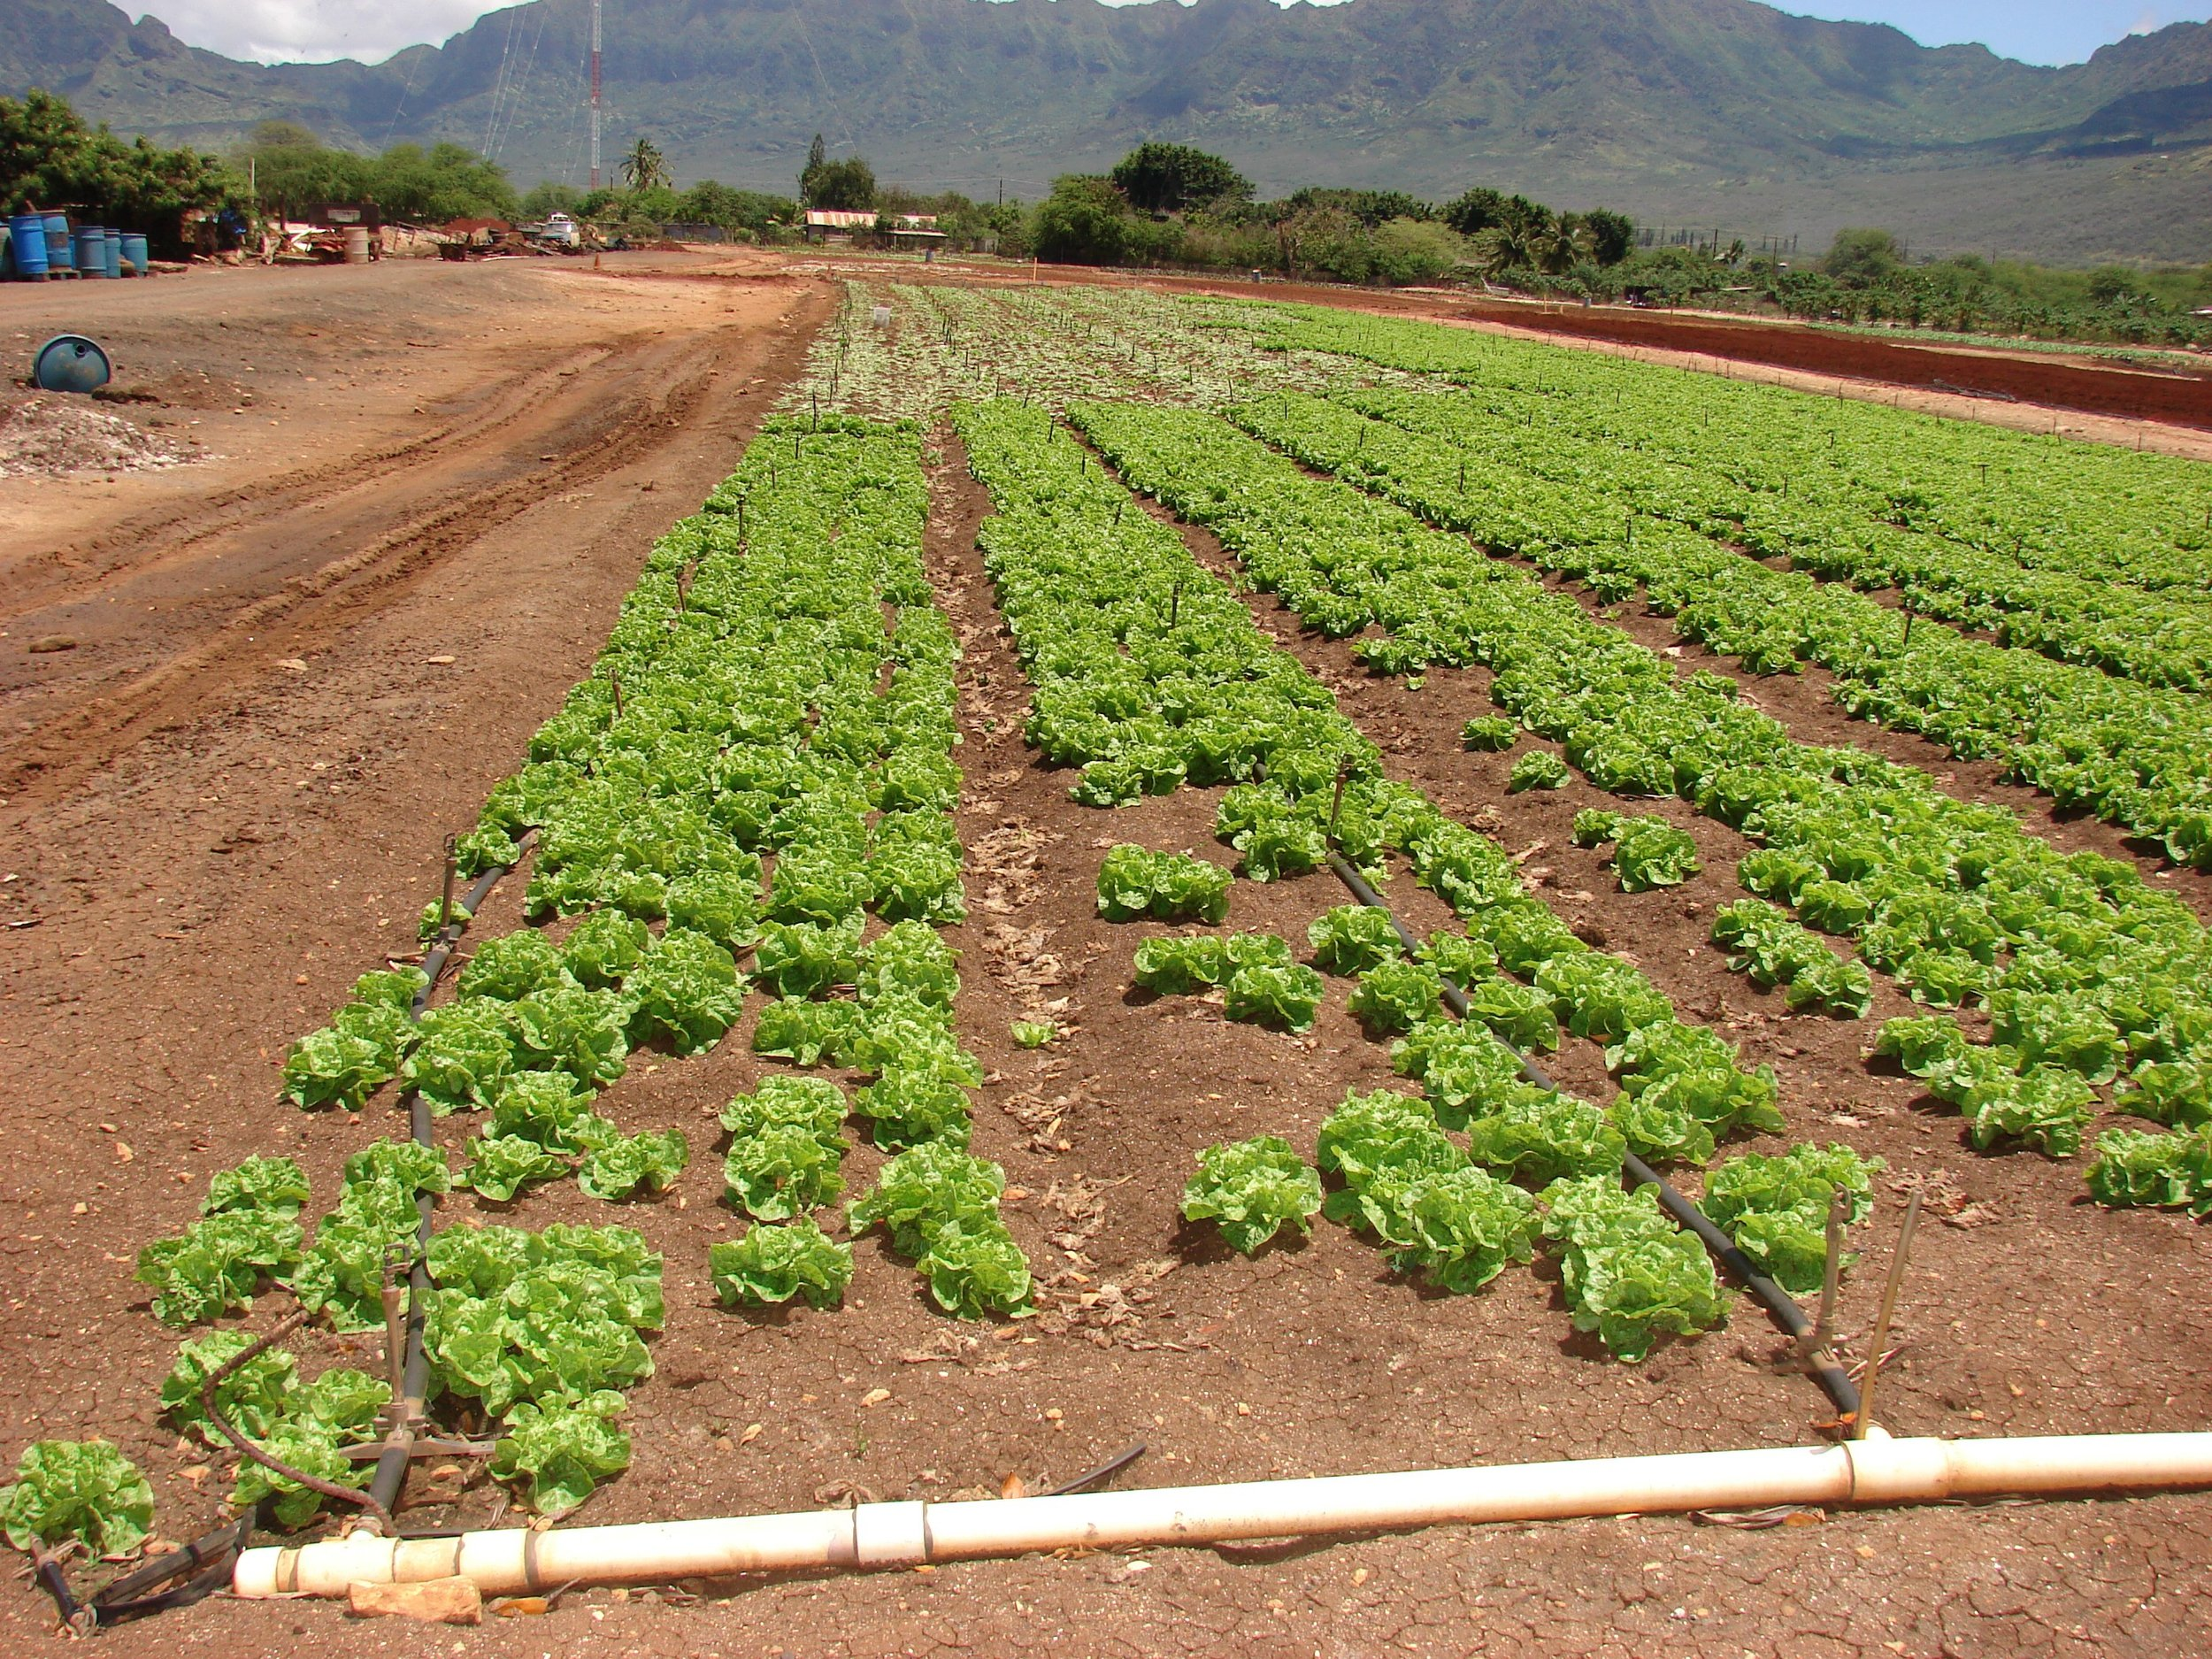 Another view of the Manoa lettuce field showing some empty spaces where lettuce did not mature due to Fusarium wilt damage.